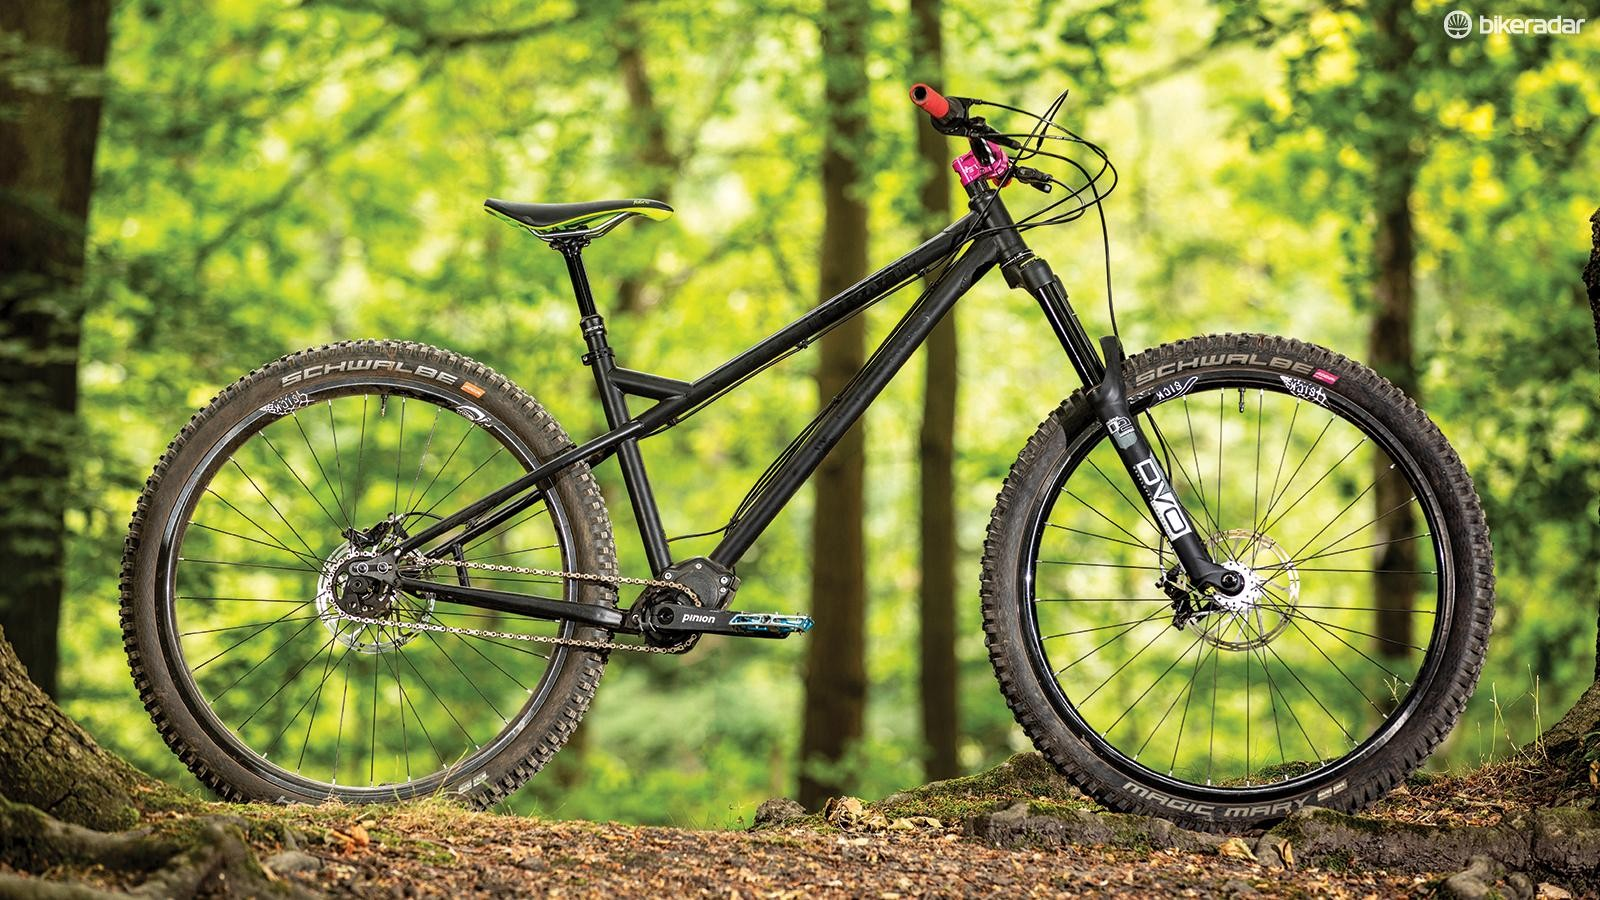 The Pinion gearbox doesn't need vulnerable derailleurs and can shift while stationary, but it's heavy, draggy and it can be hard to shift under power